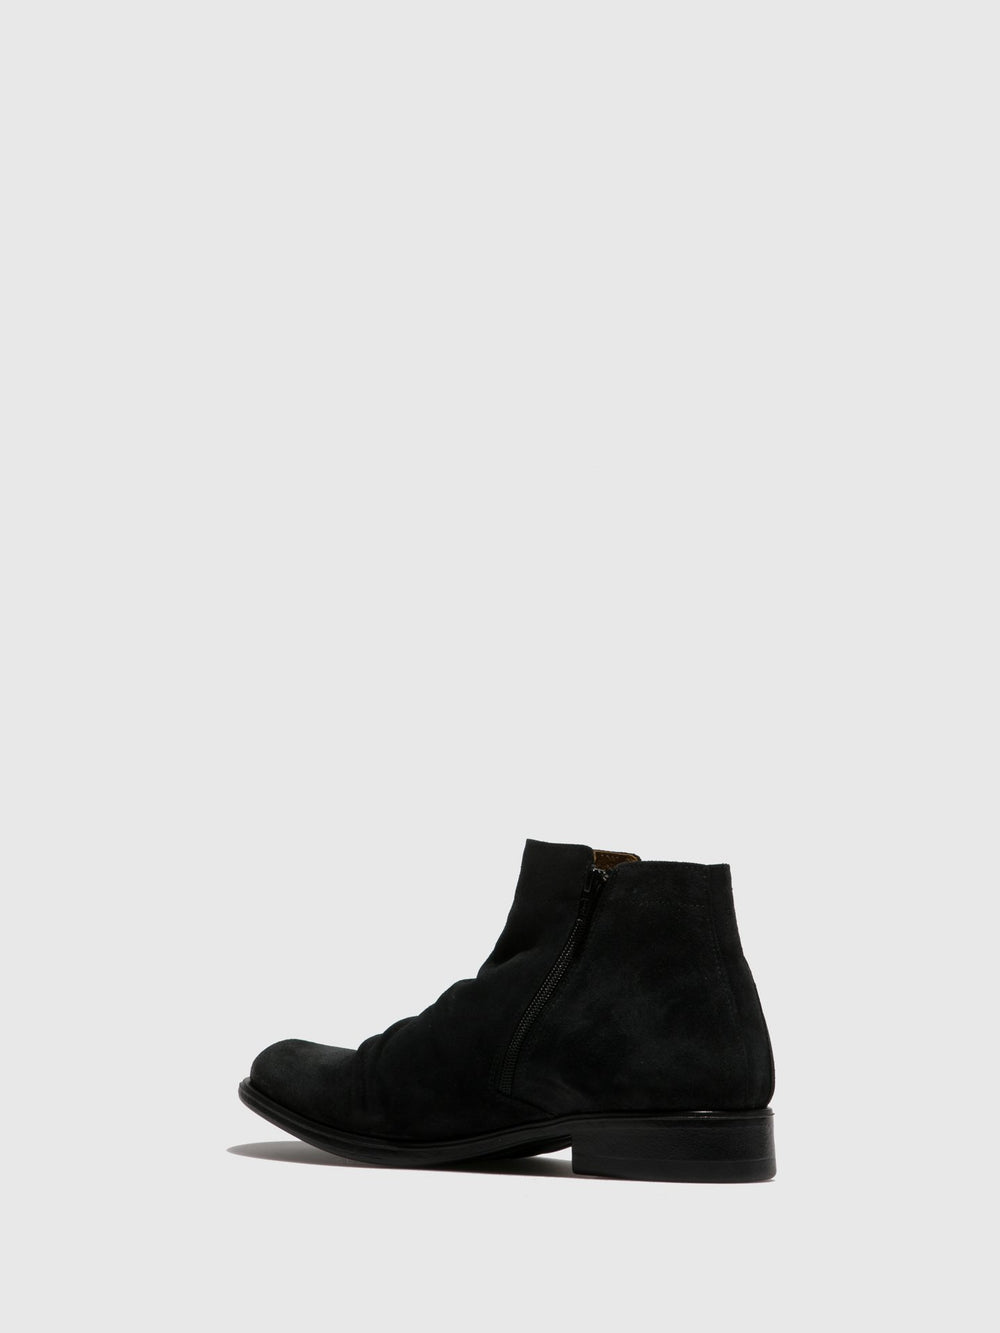 Fringed Ankle Boots MOBE592FLY BLACK